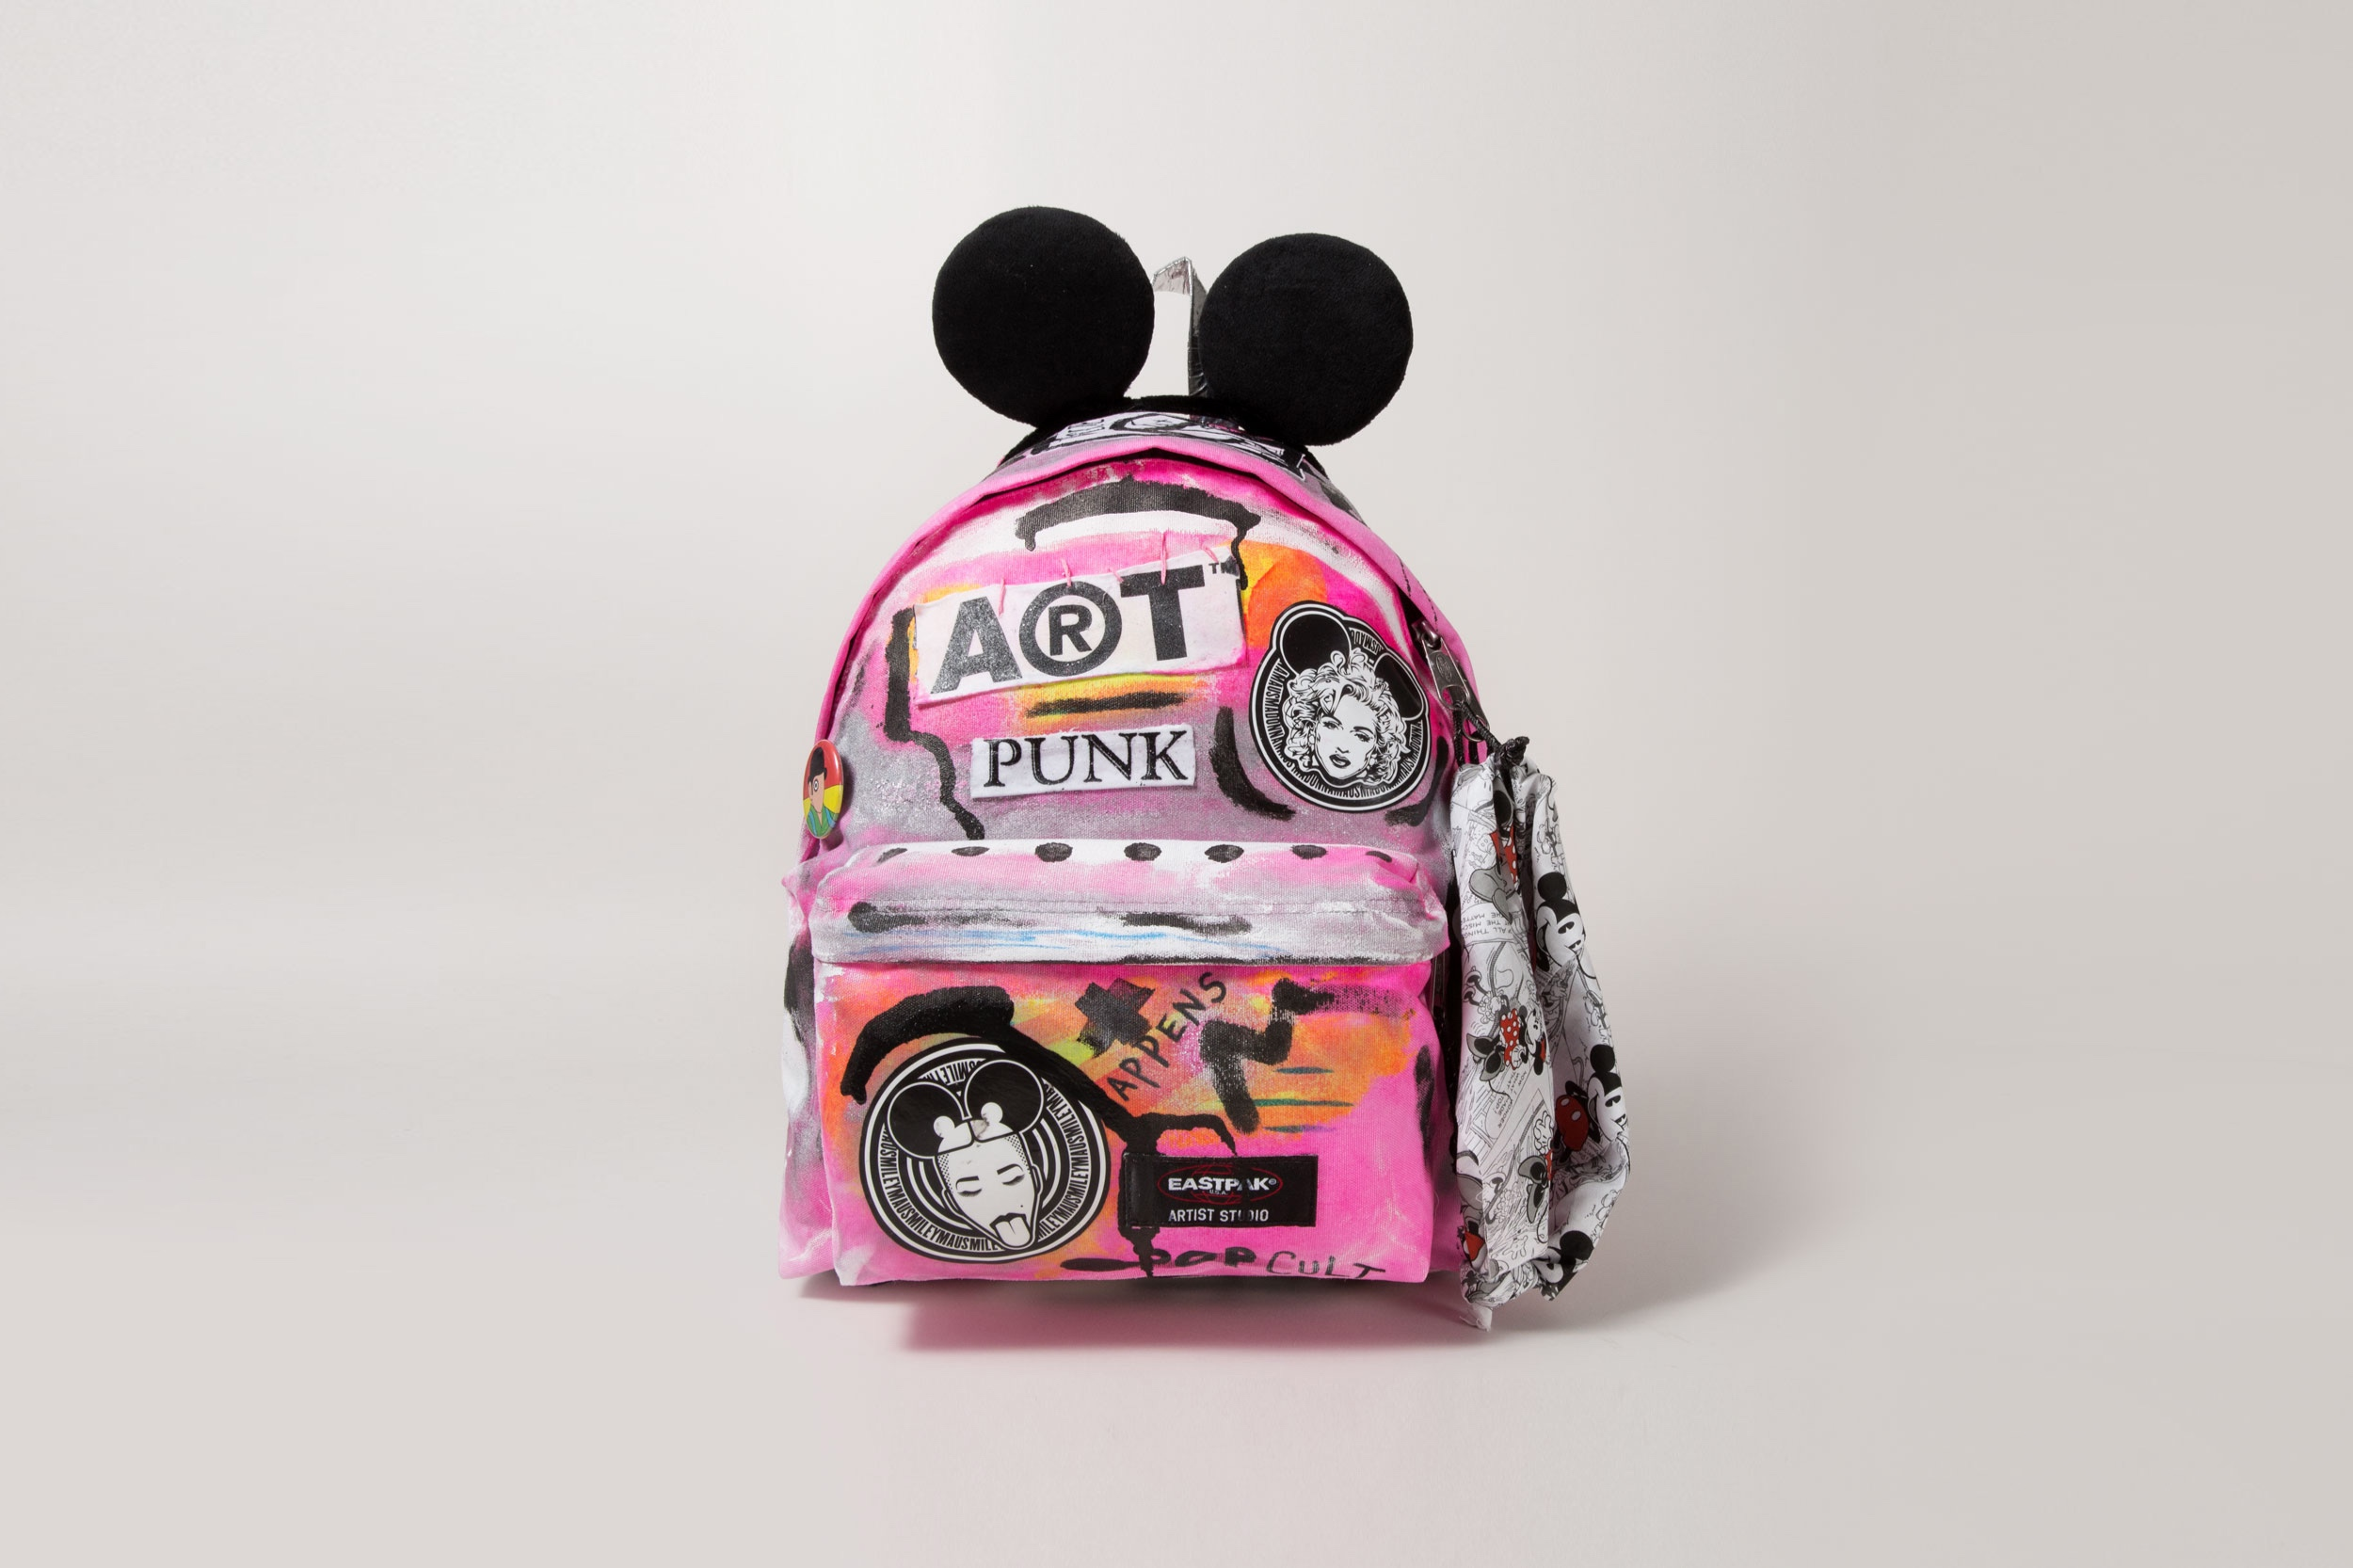 Eastpak - One of eight artists selected to customize product for charity auction